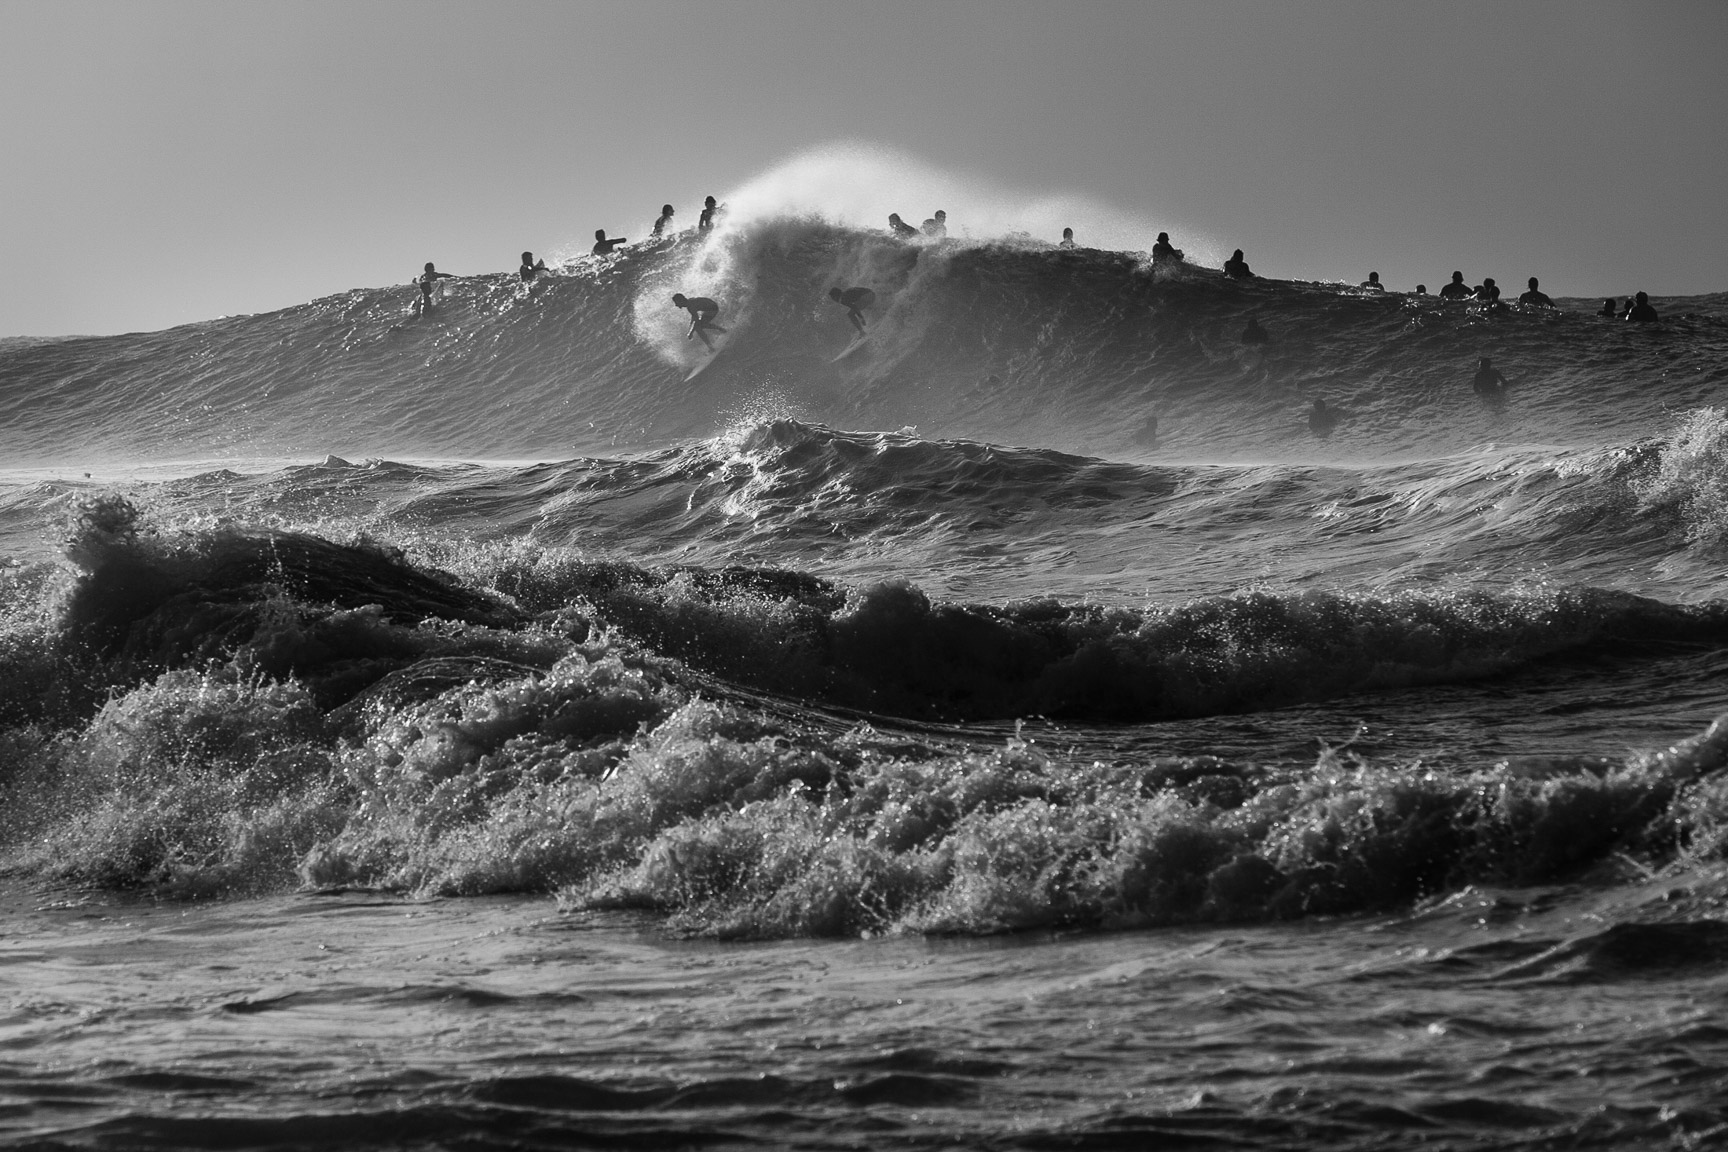 Surfers at Pipeline, Hawaii